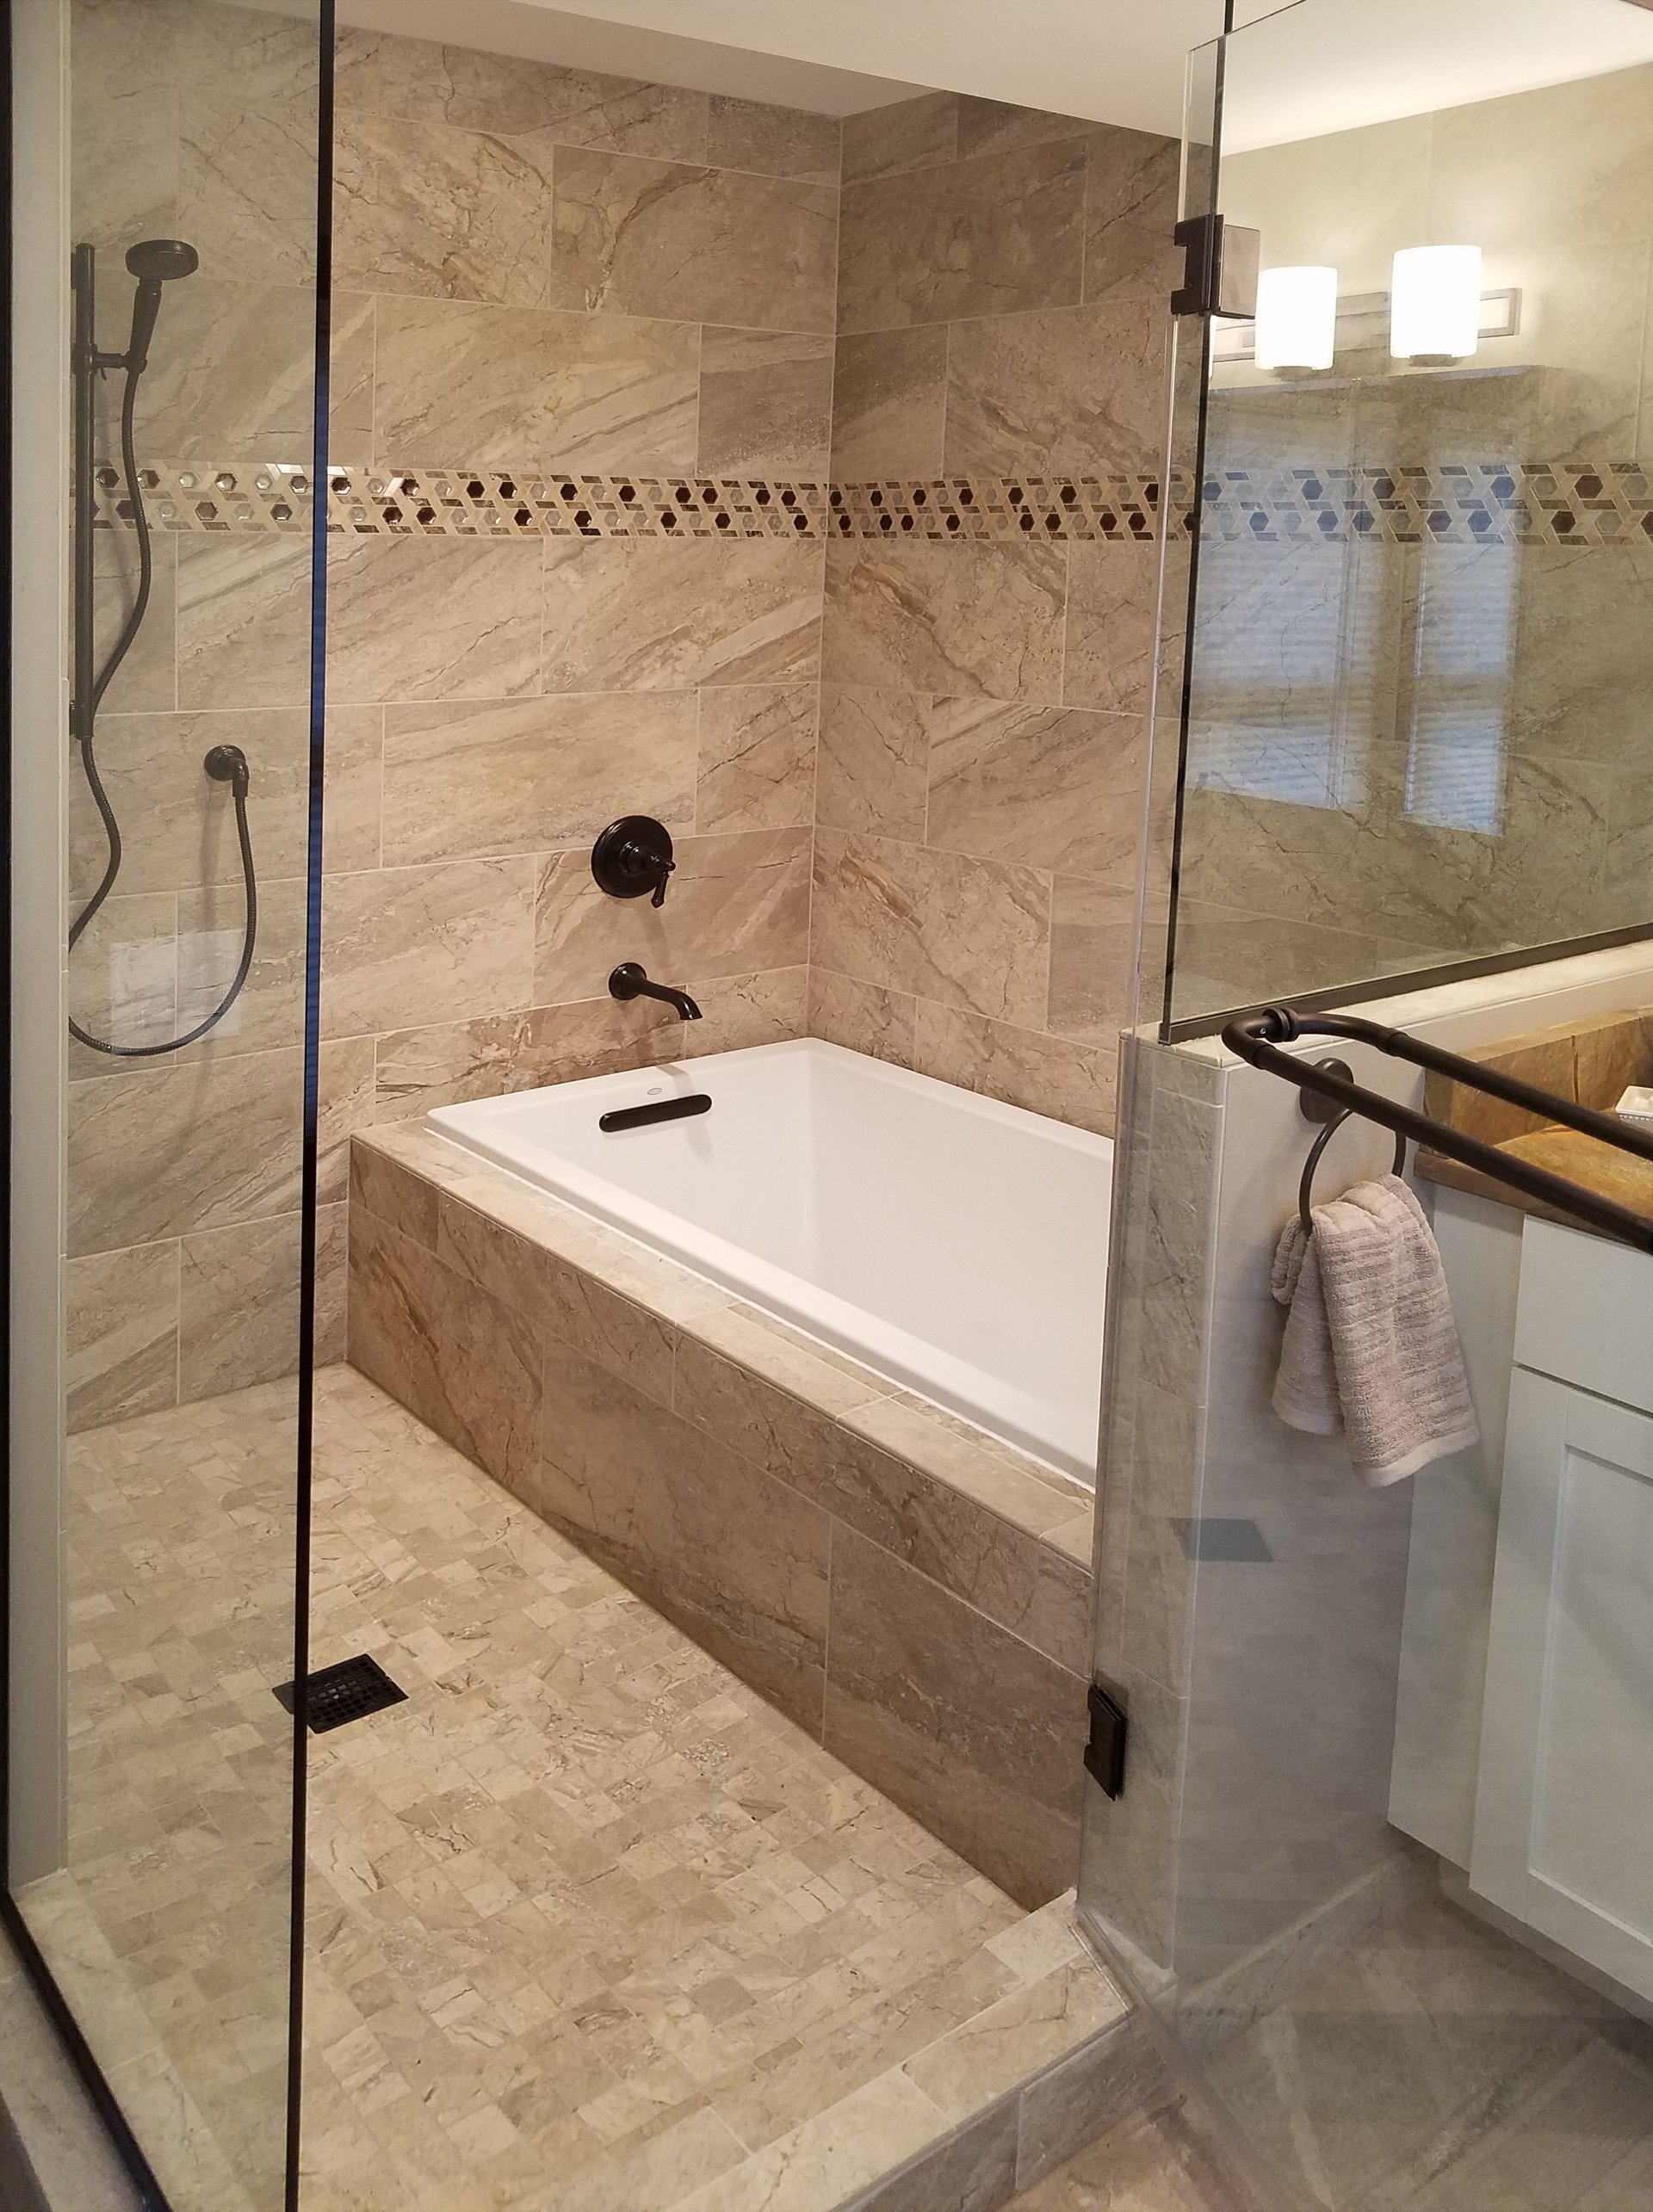 Bathroom design madison wi - Transitional Bathroom Remodel In Madison Wi Tub And Shower Glass Enclosure Soaking Tub